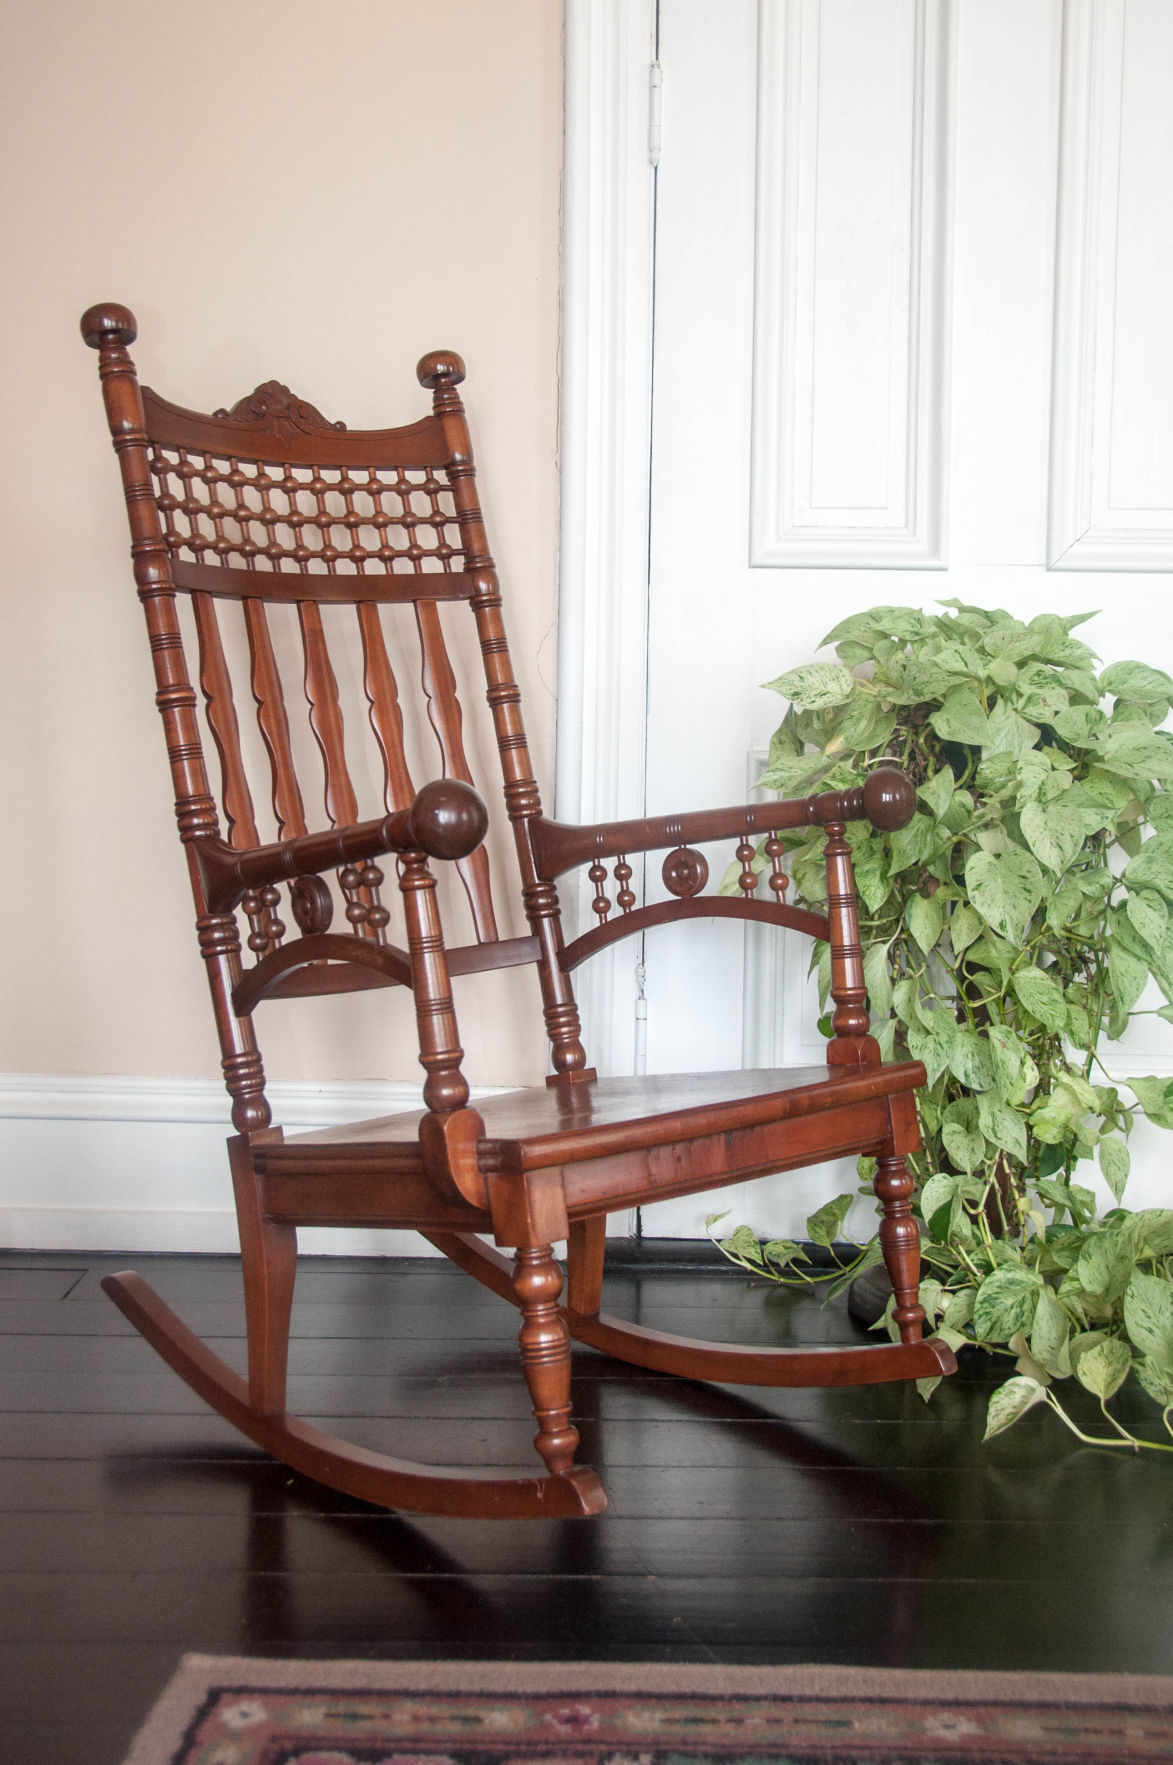 Mexican Rocking Chair Wharton Rocking Chair Returns To Glencoe Mansion Community